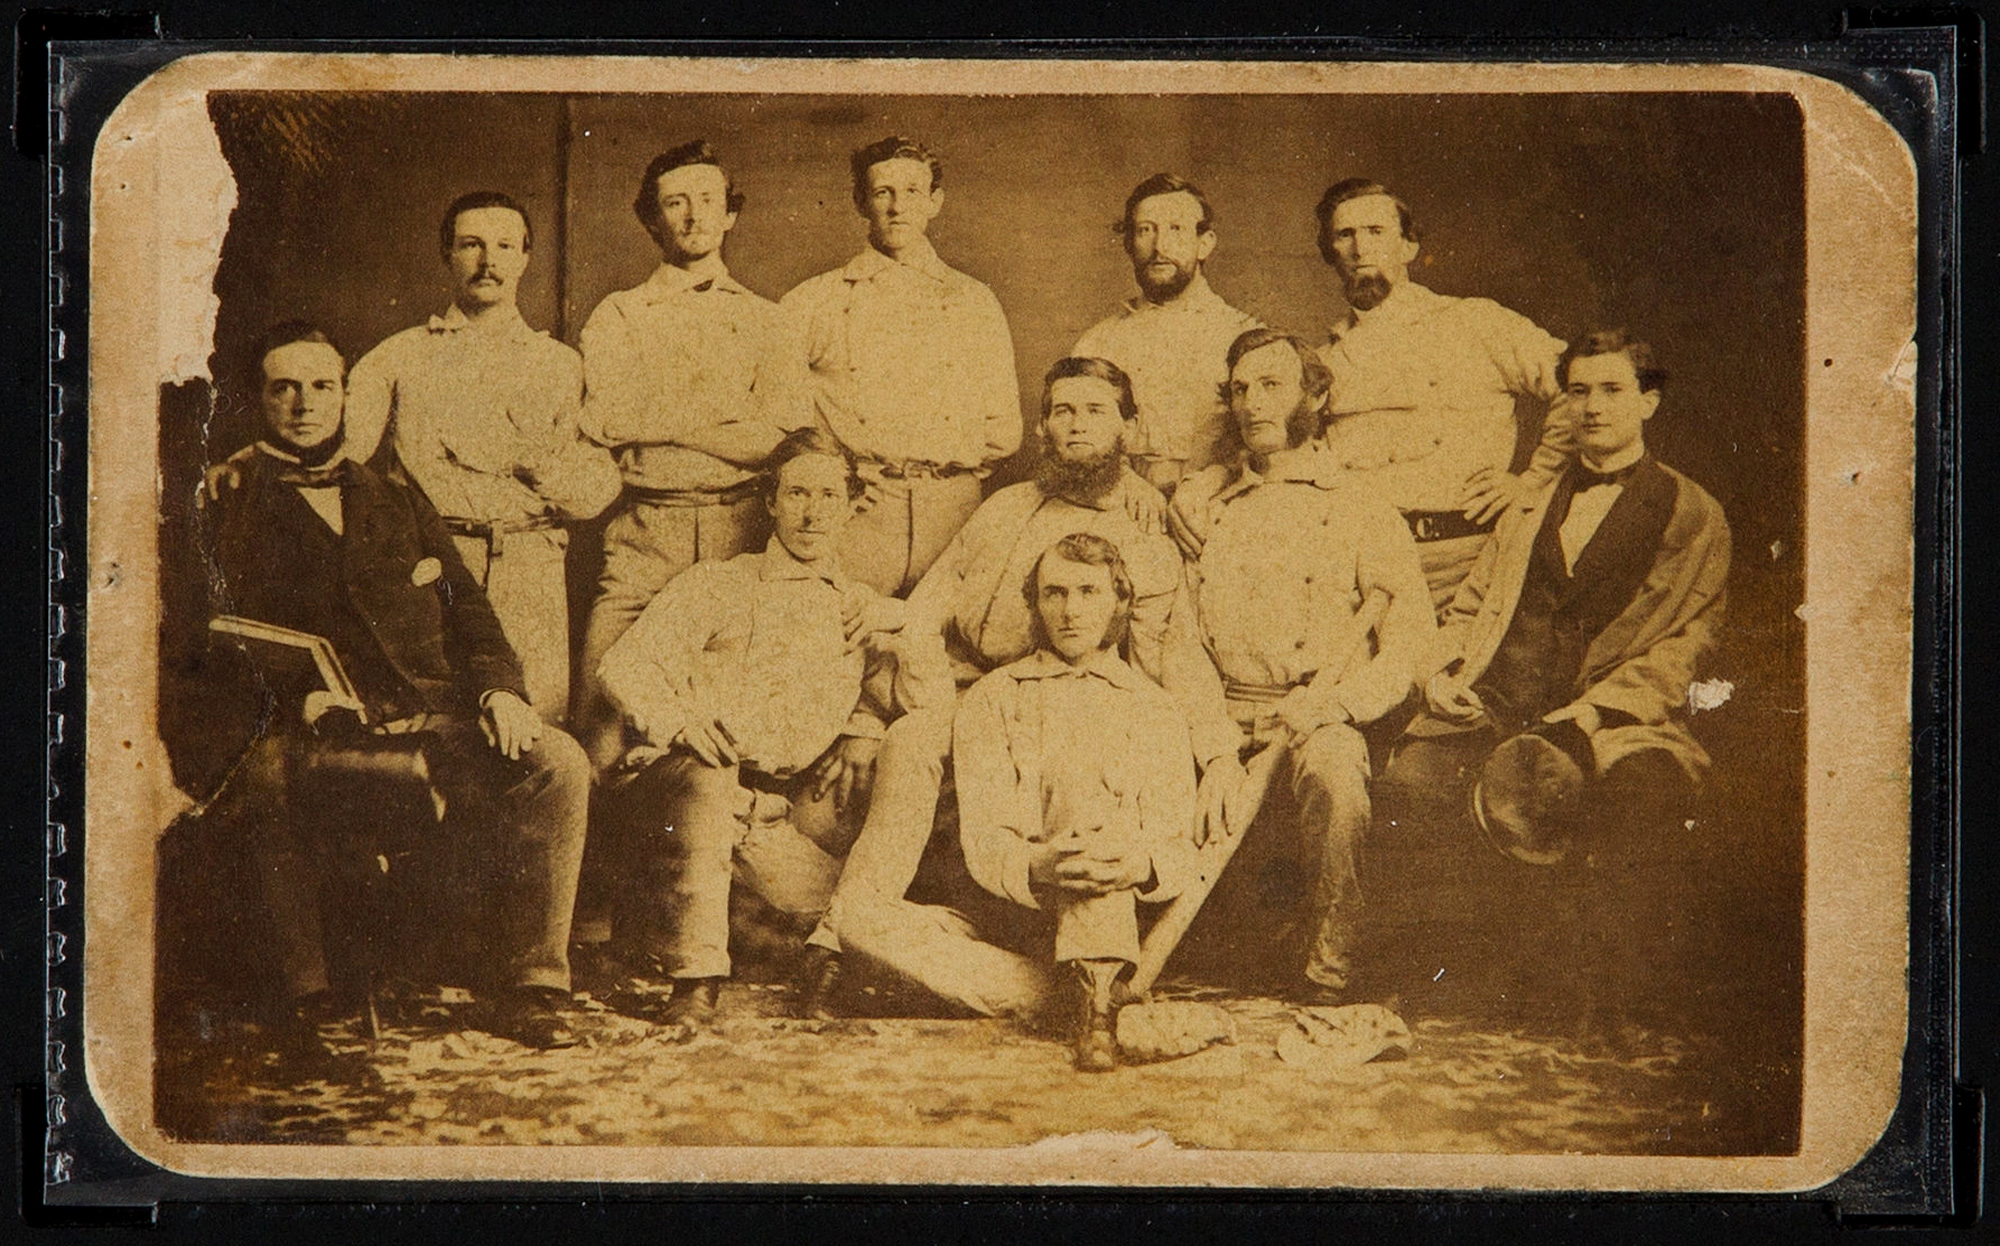 1860s baseball card fetches $179,000 at auction